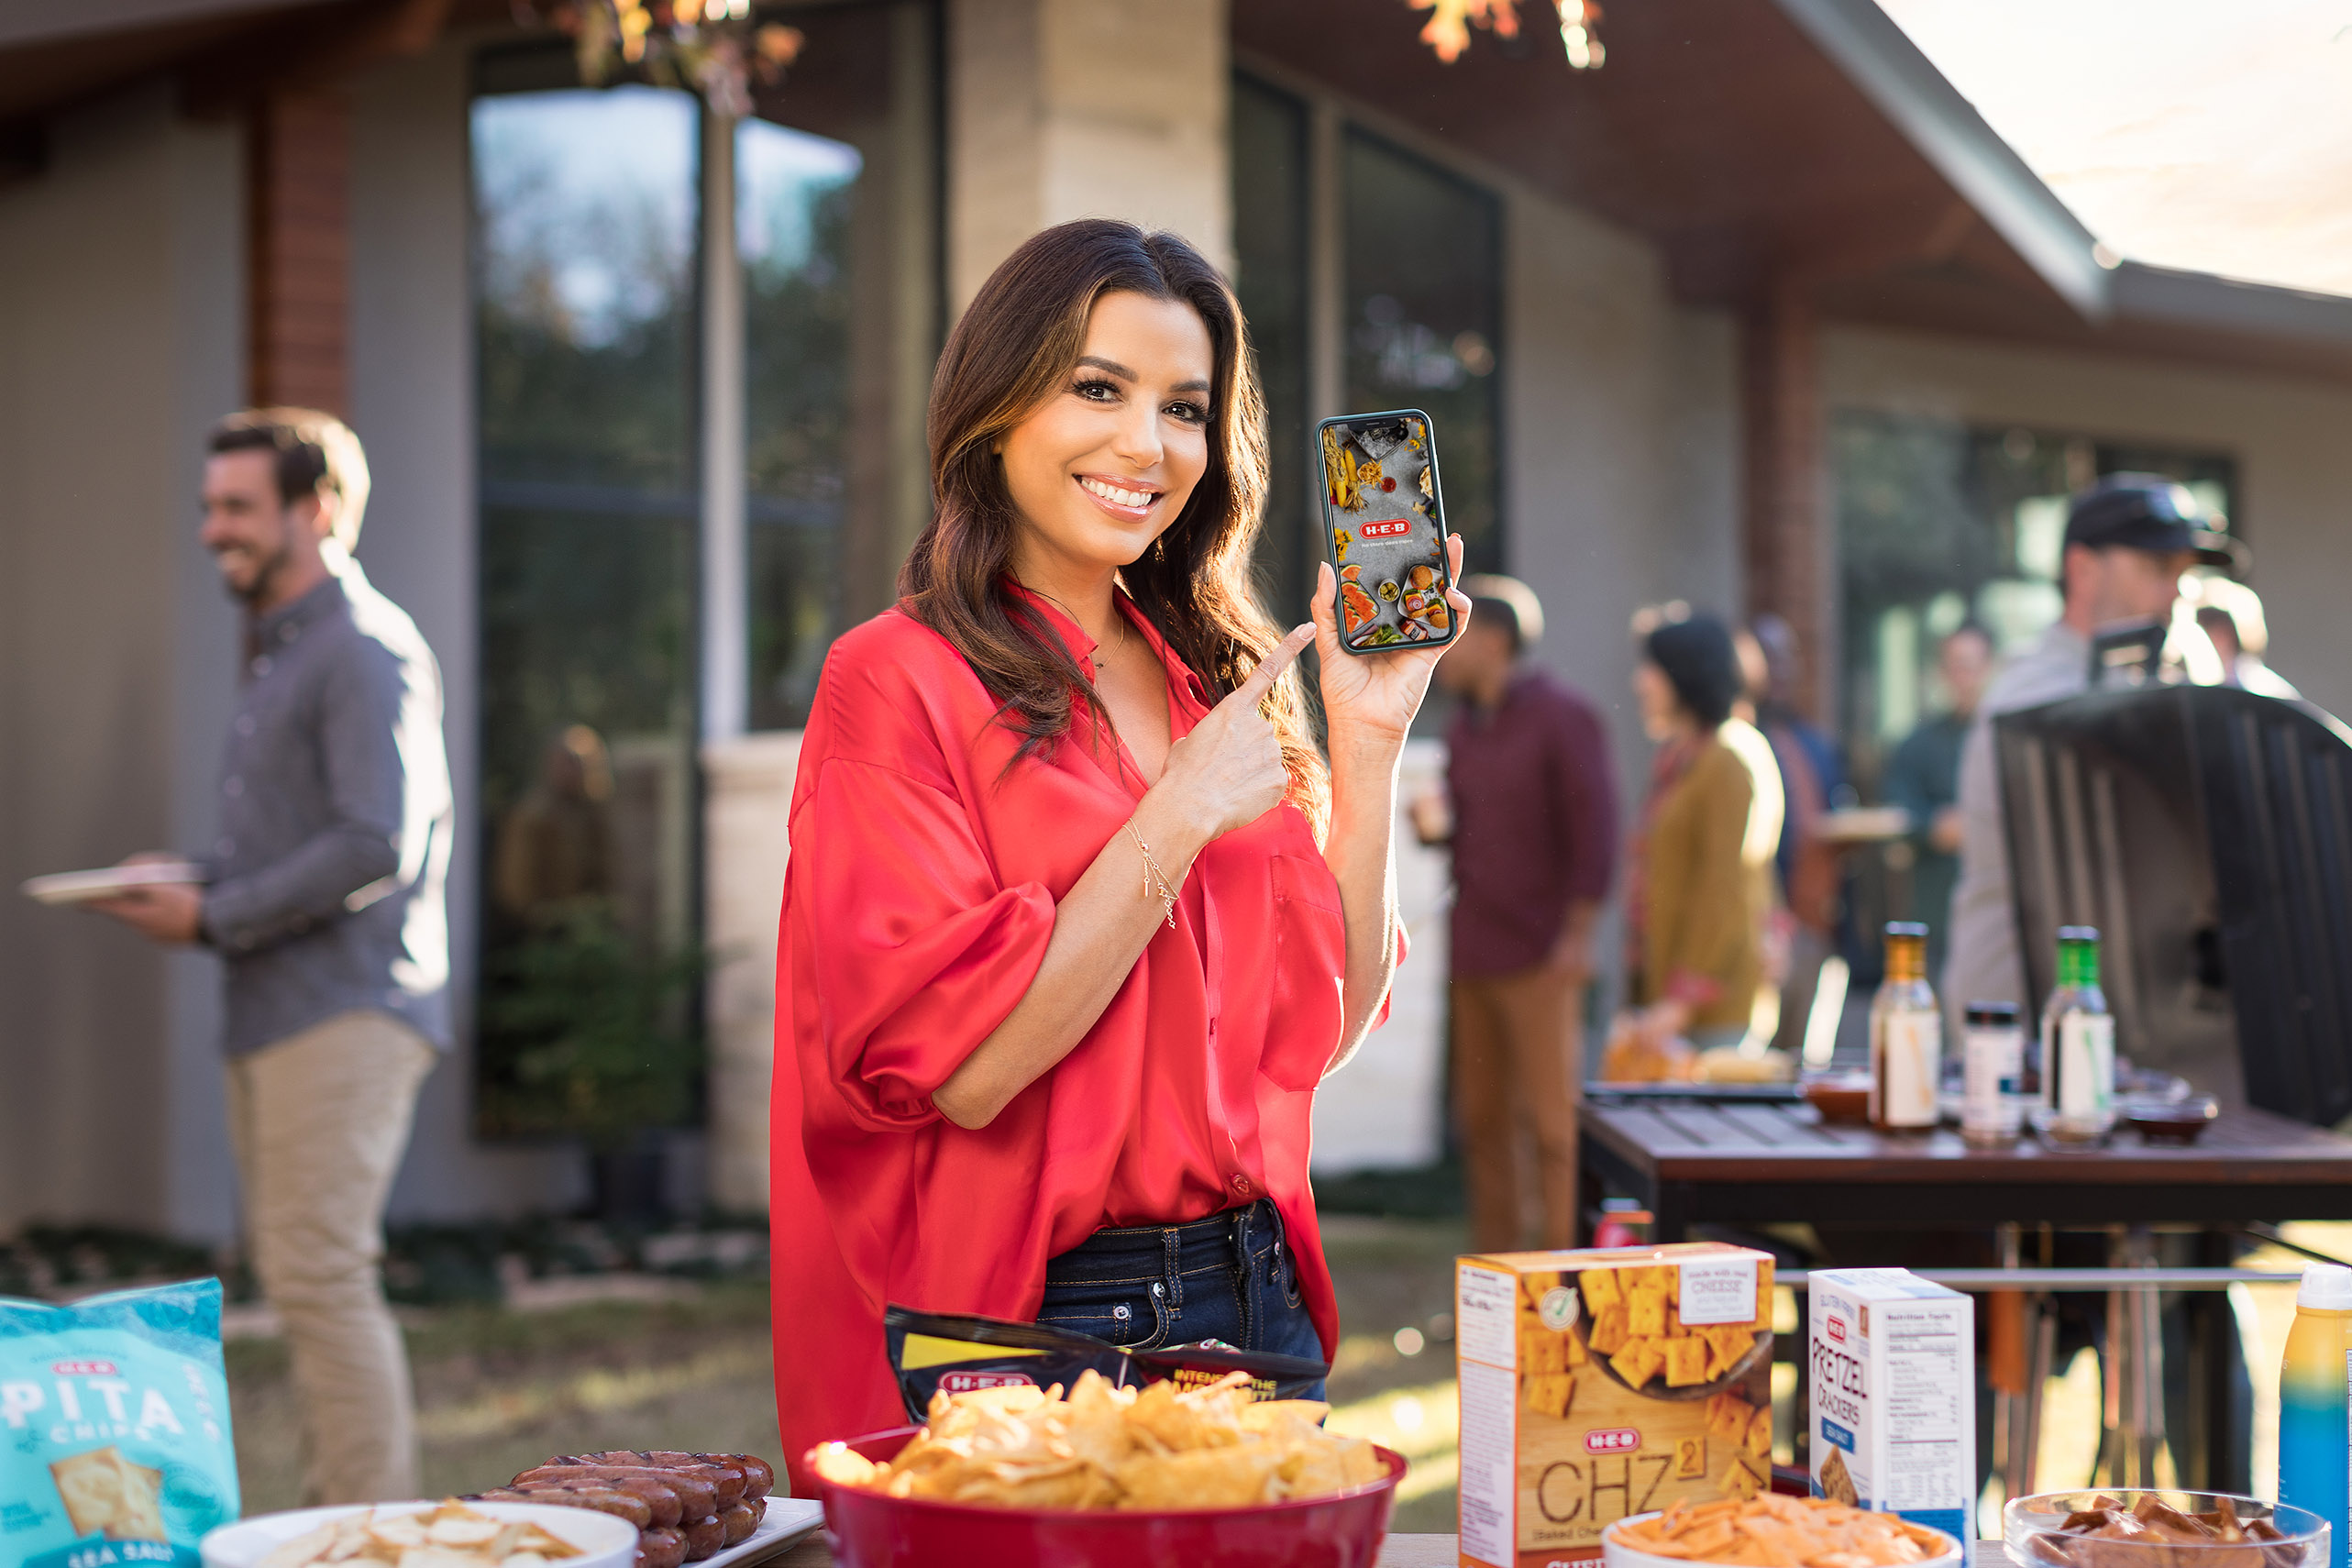 Eva Longoria Photographed by Jason Risner For HEB in Austin, Texas